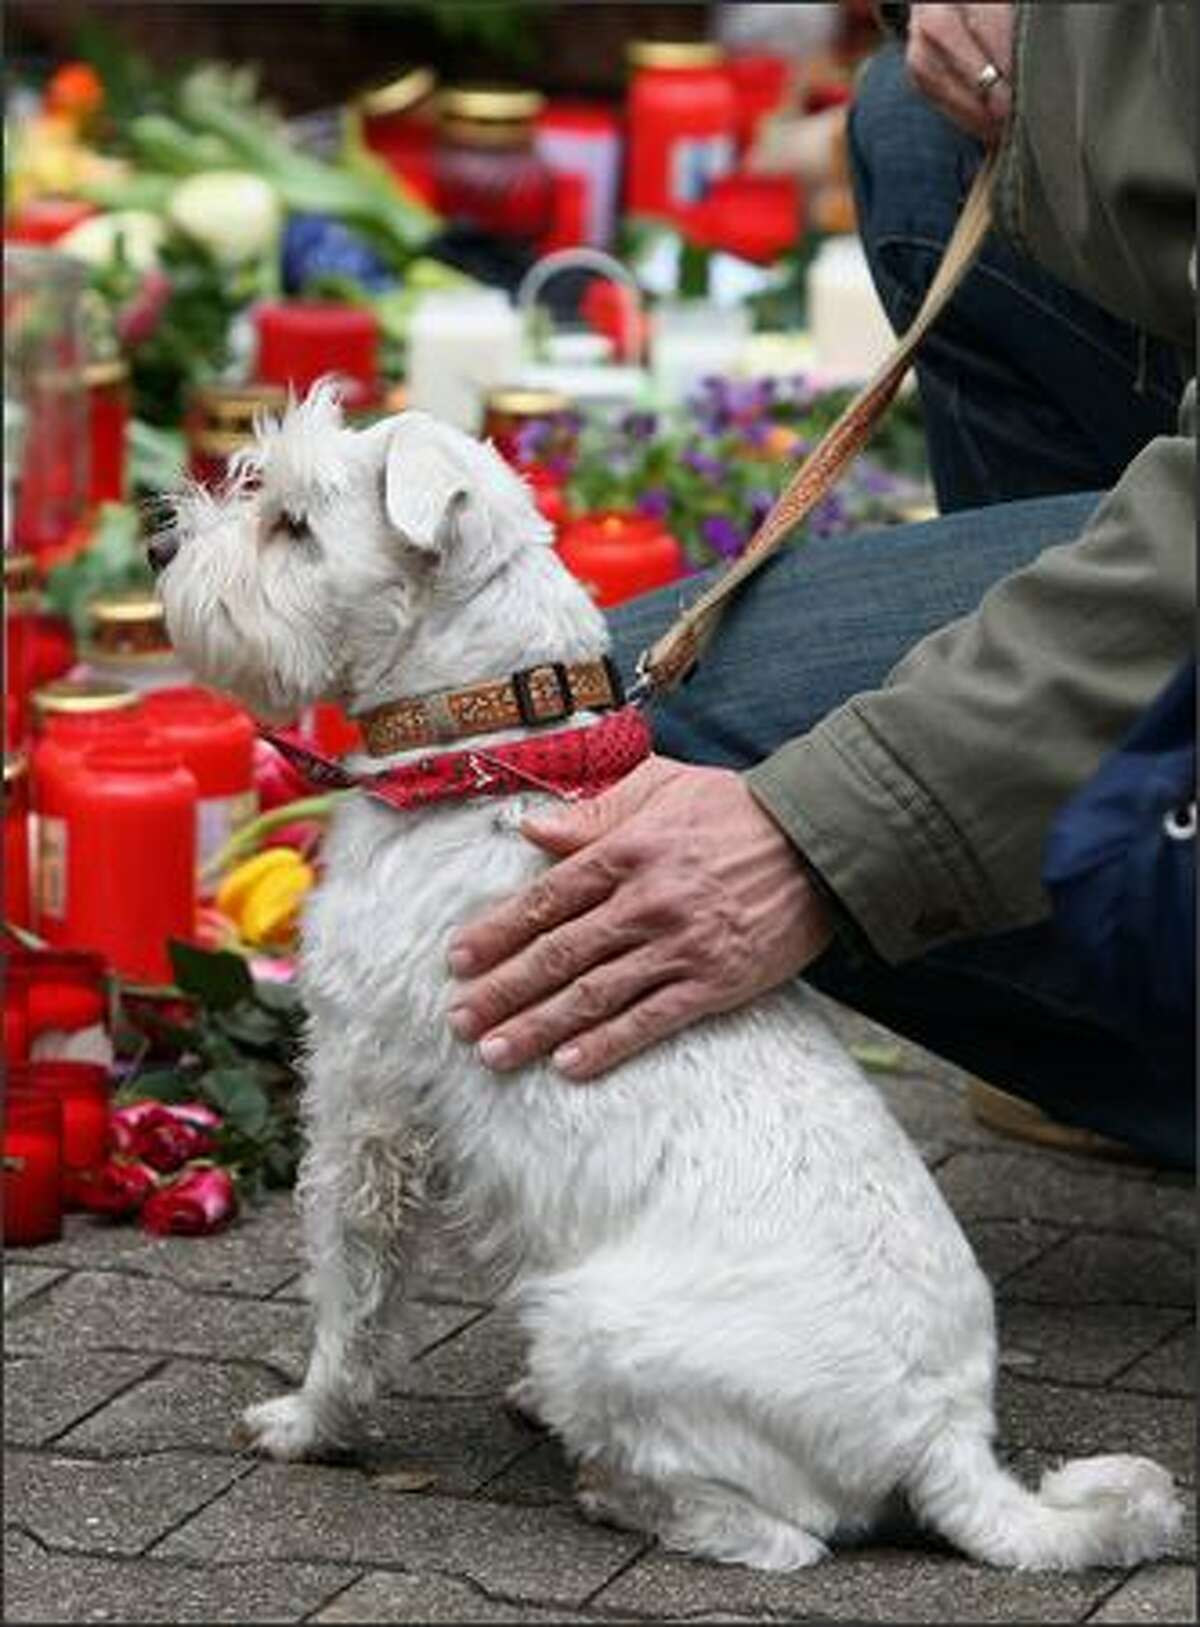 A man pets a dog in front of candles and flowers at the Albertville School Centre in Winnenden near Stuttgart, Germany.